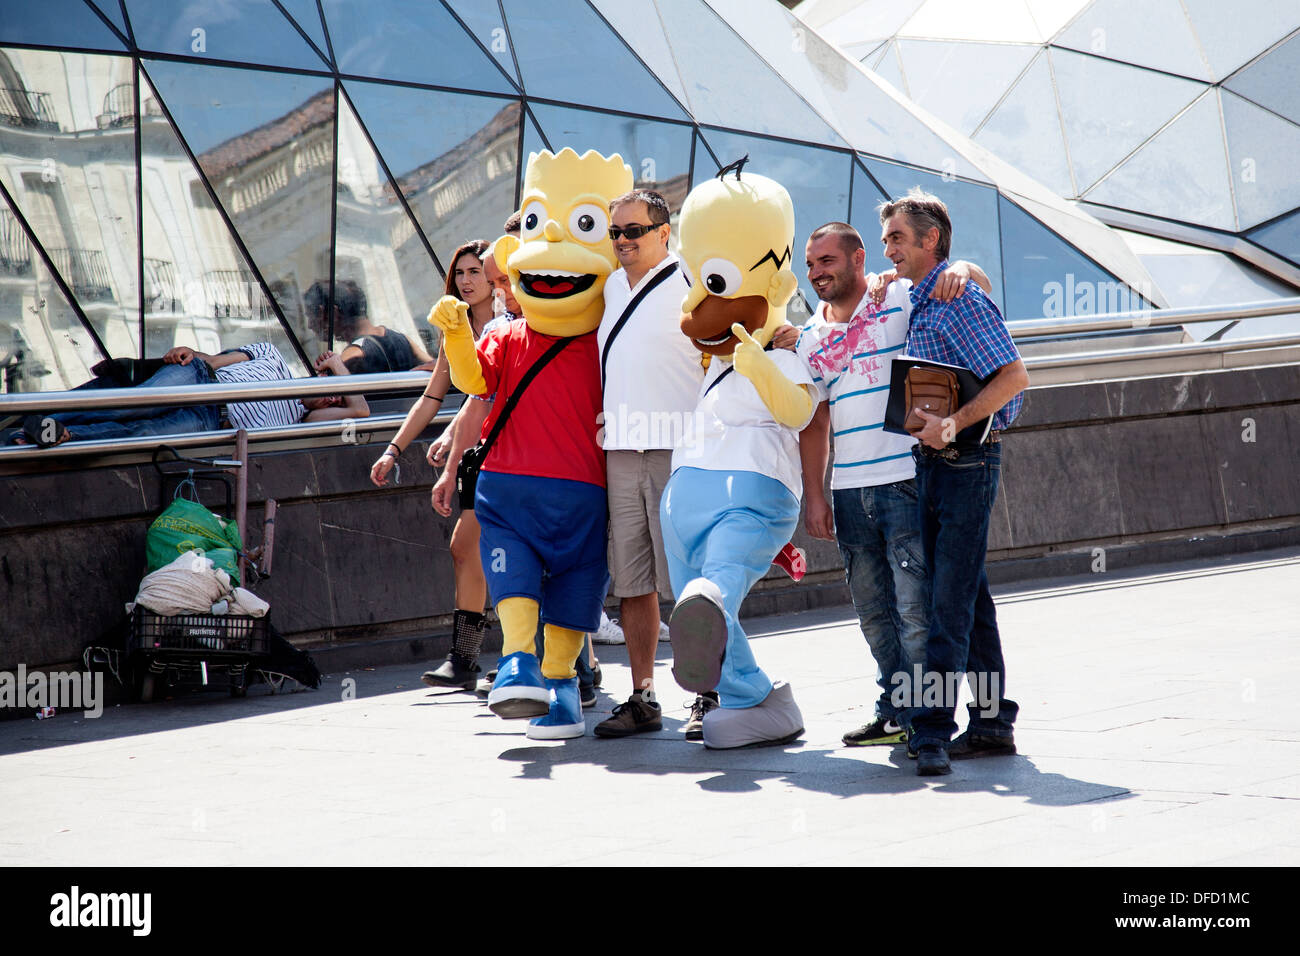 Tourist pose with street artist as the Simpsons in the Puerta del Sol, Madrid, Spain - Stock Image